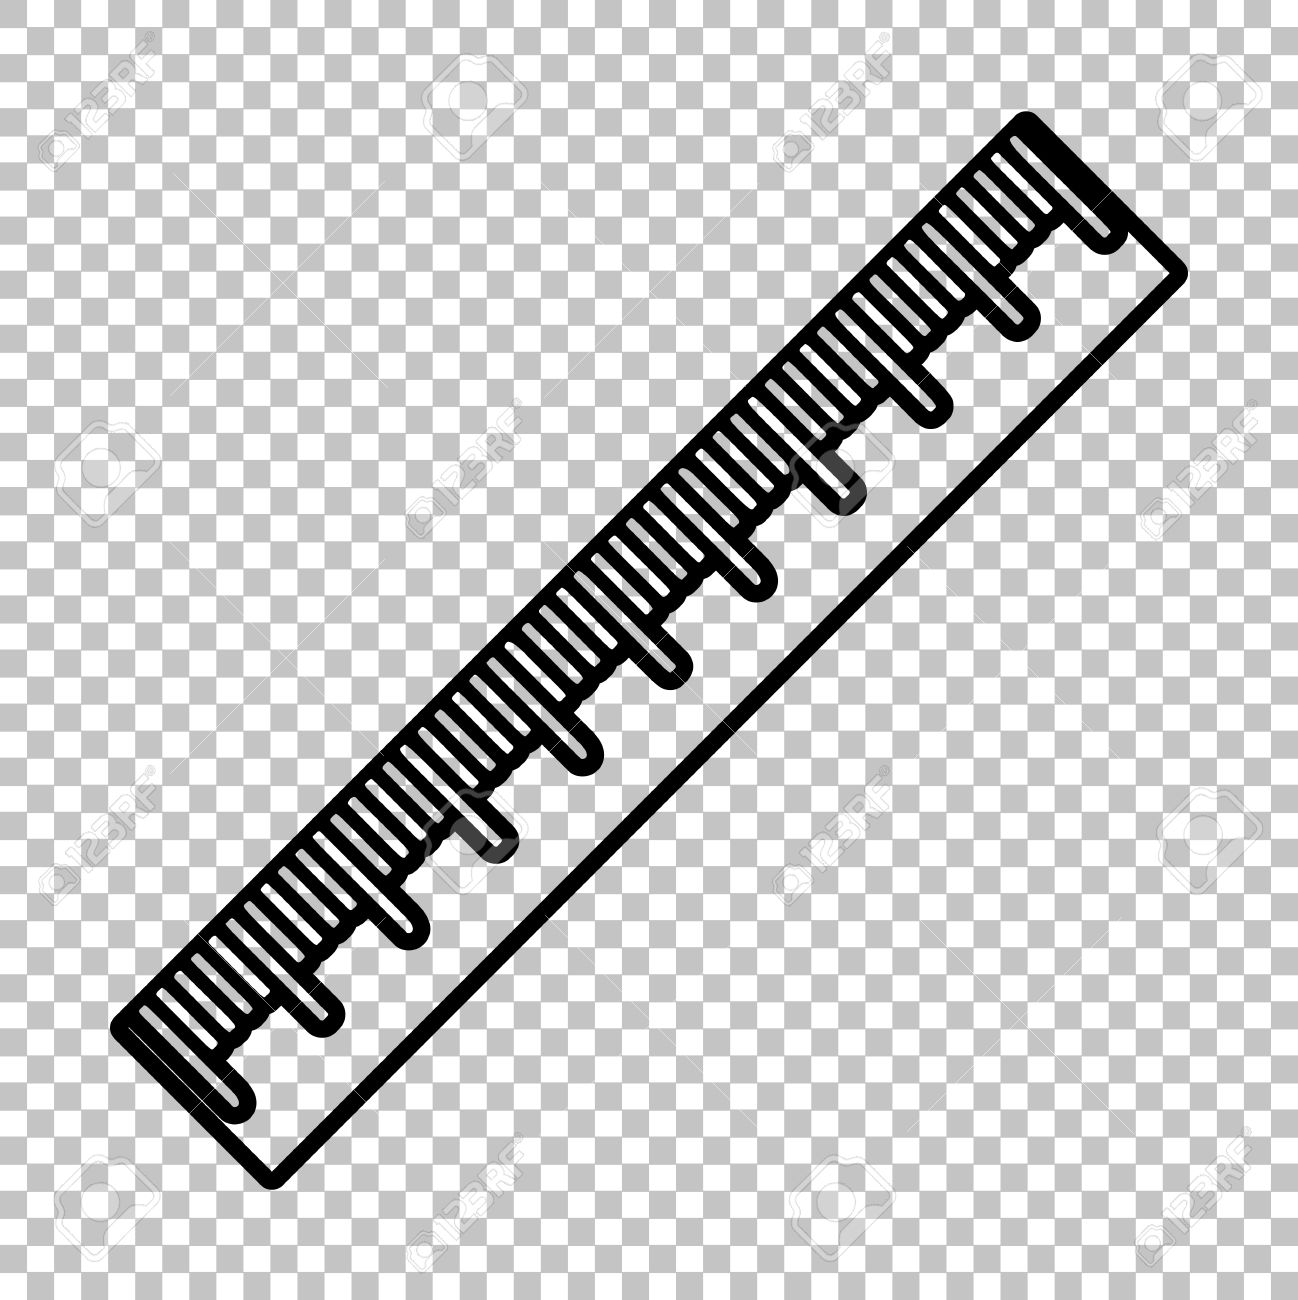 1653 Ruler free clipart.